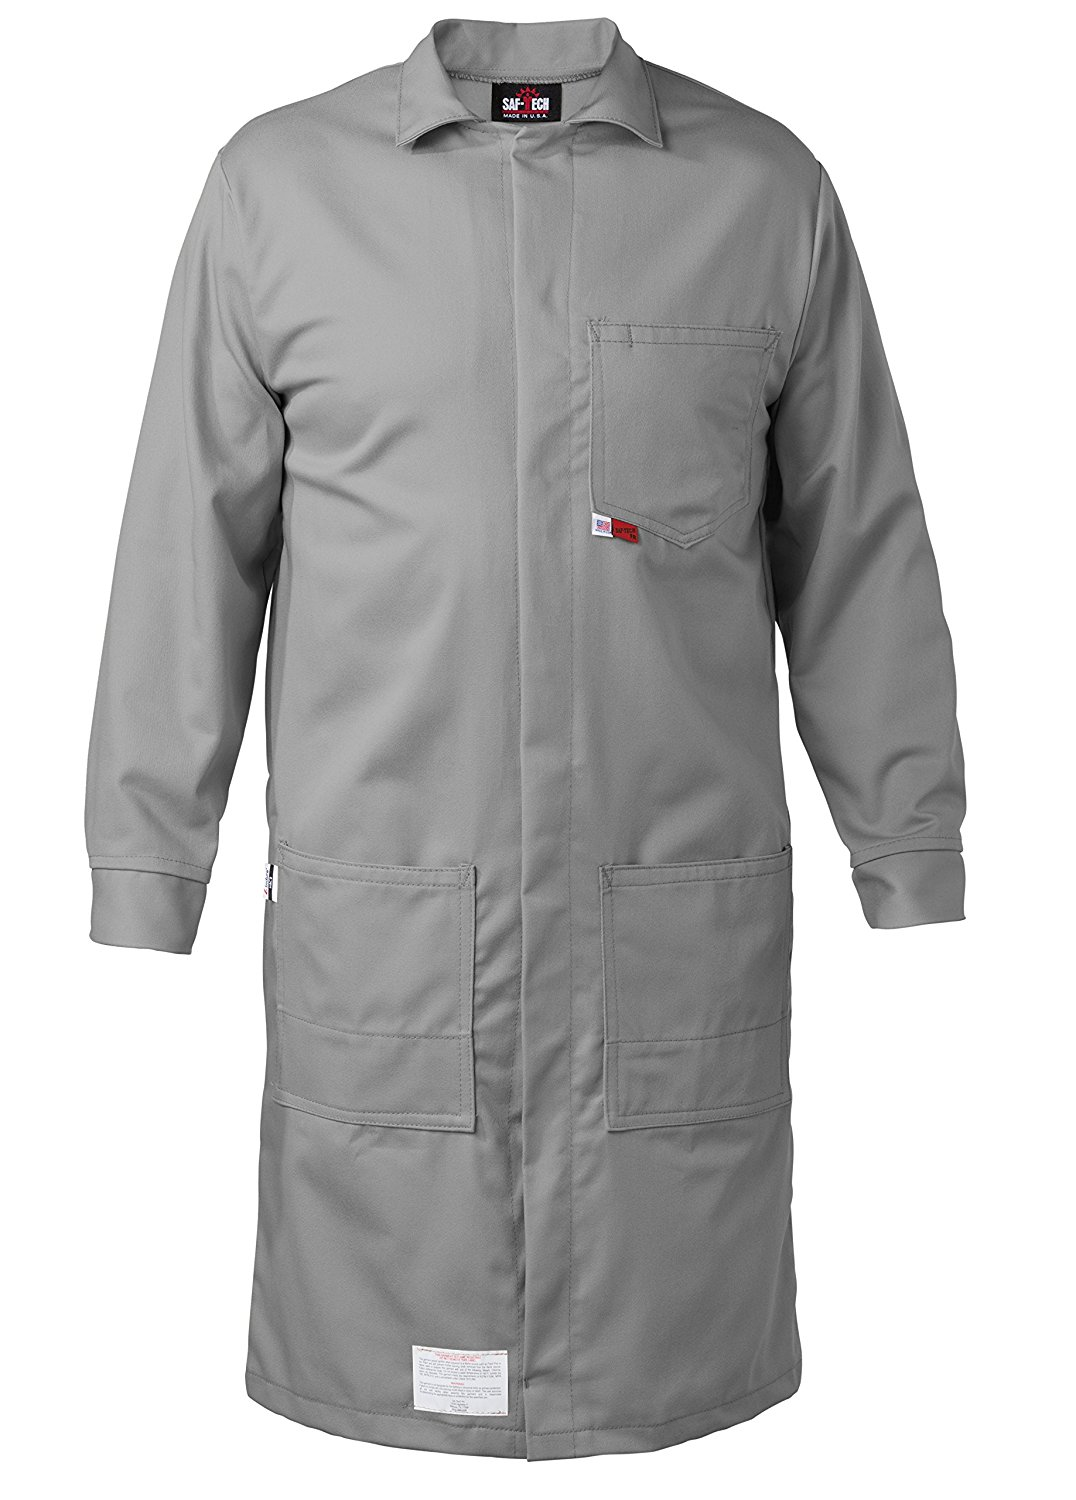 GRAY - X-LARGE - FR LAB COAT - 6oz. NOMEX III3 Flame Resistant Fabric - Lab or Classroom Ready - HRC 1 - APTV= 5.7 cal/m2 - MADE IN THE U.S.A.